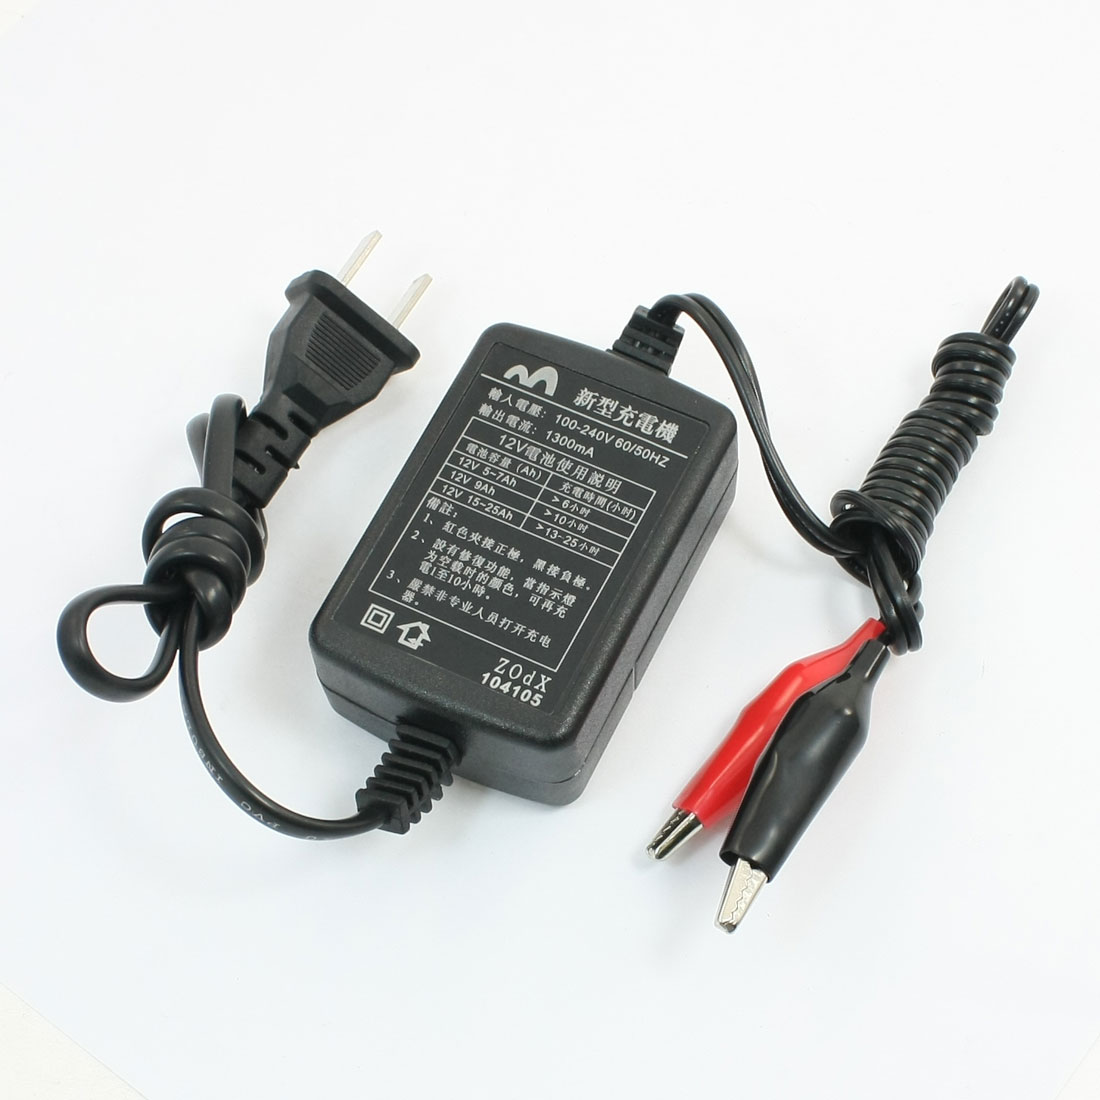 US Plug 12V 1A 12W Alligator Clip Battery Intelligent Electromobile Charger